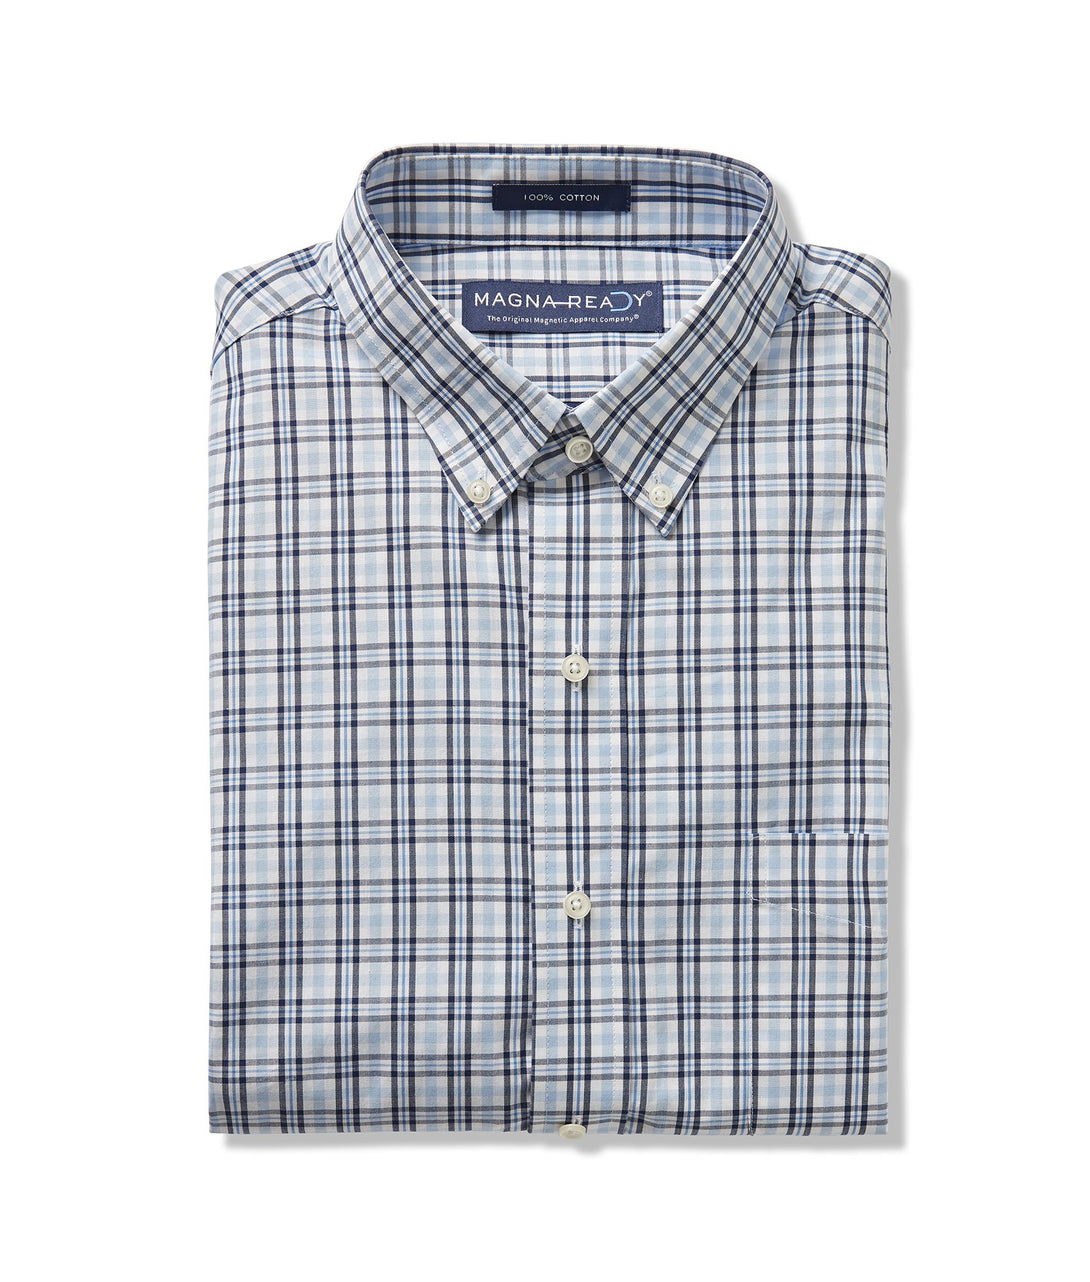 Fog Blue Multi Poplin Plaid Long Sleeve 'Heights' Casual Shirt with Magnetic Closures